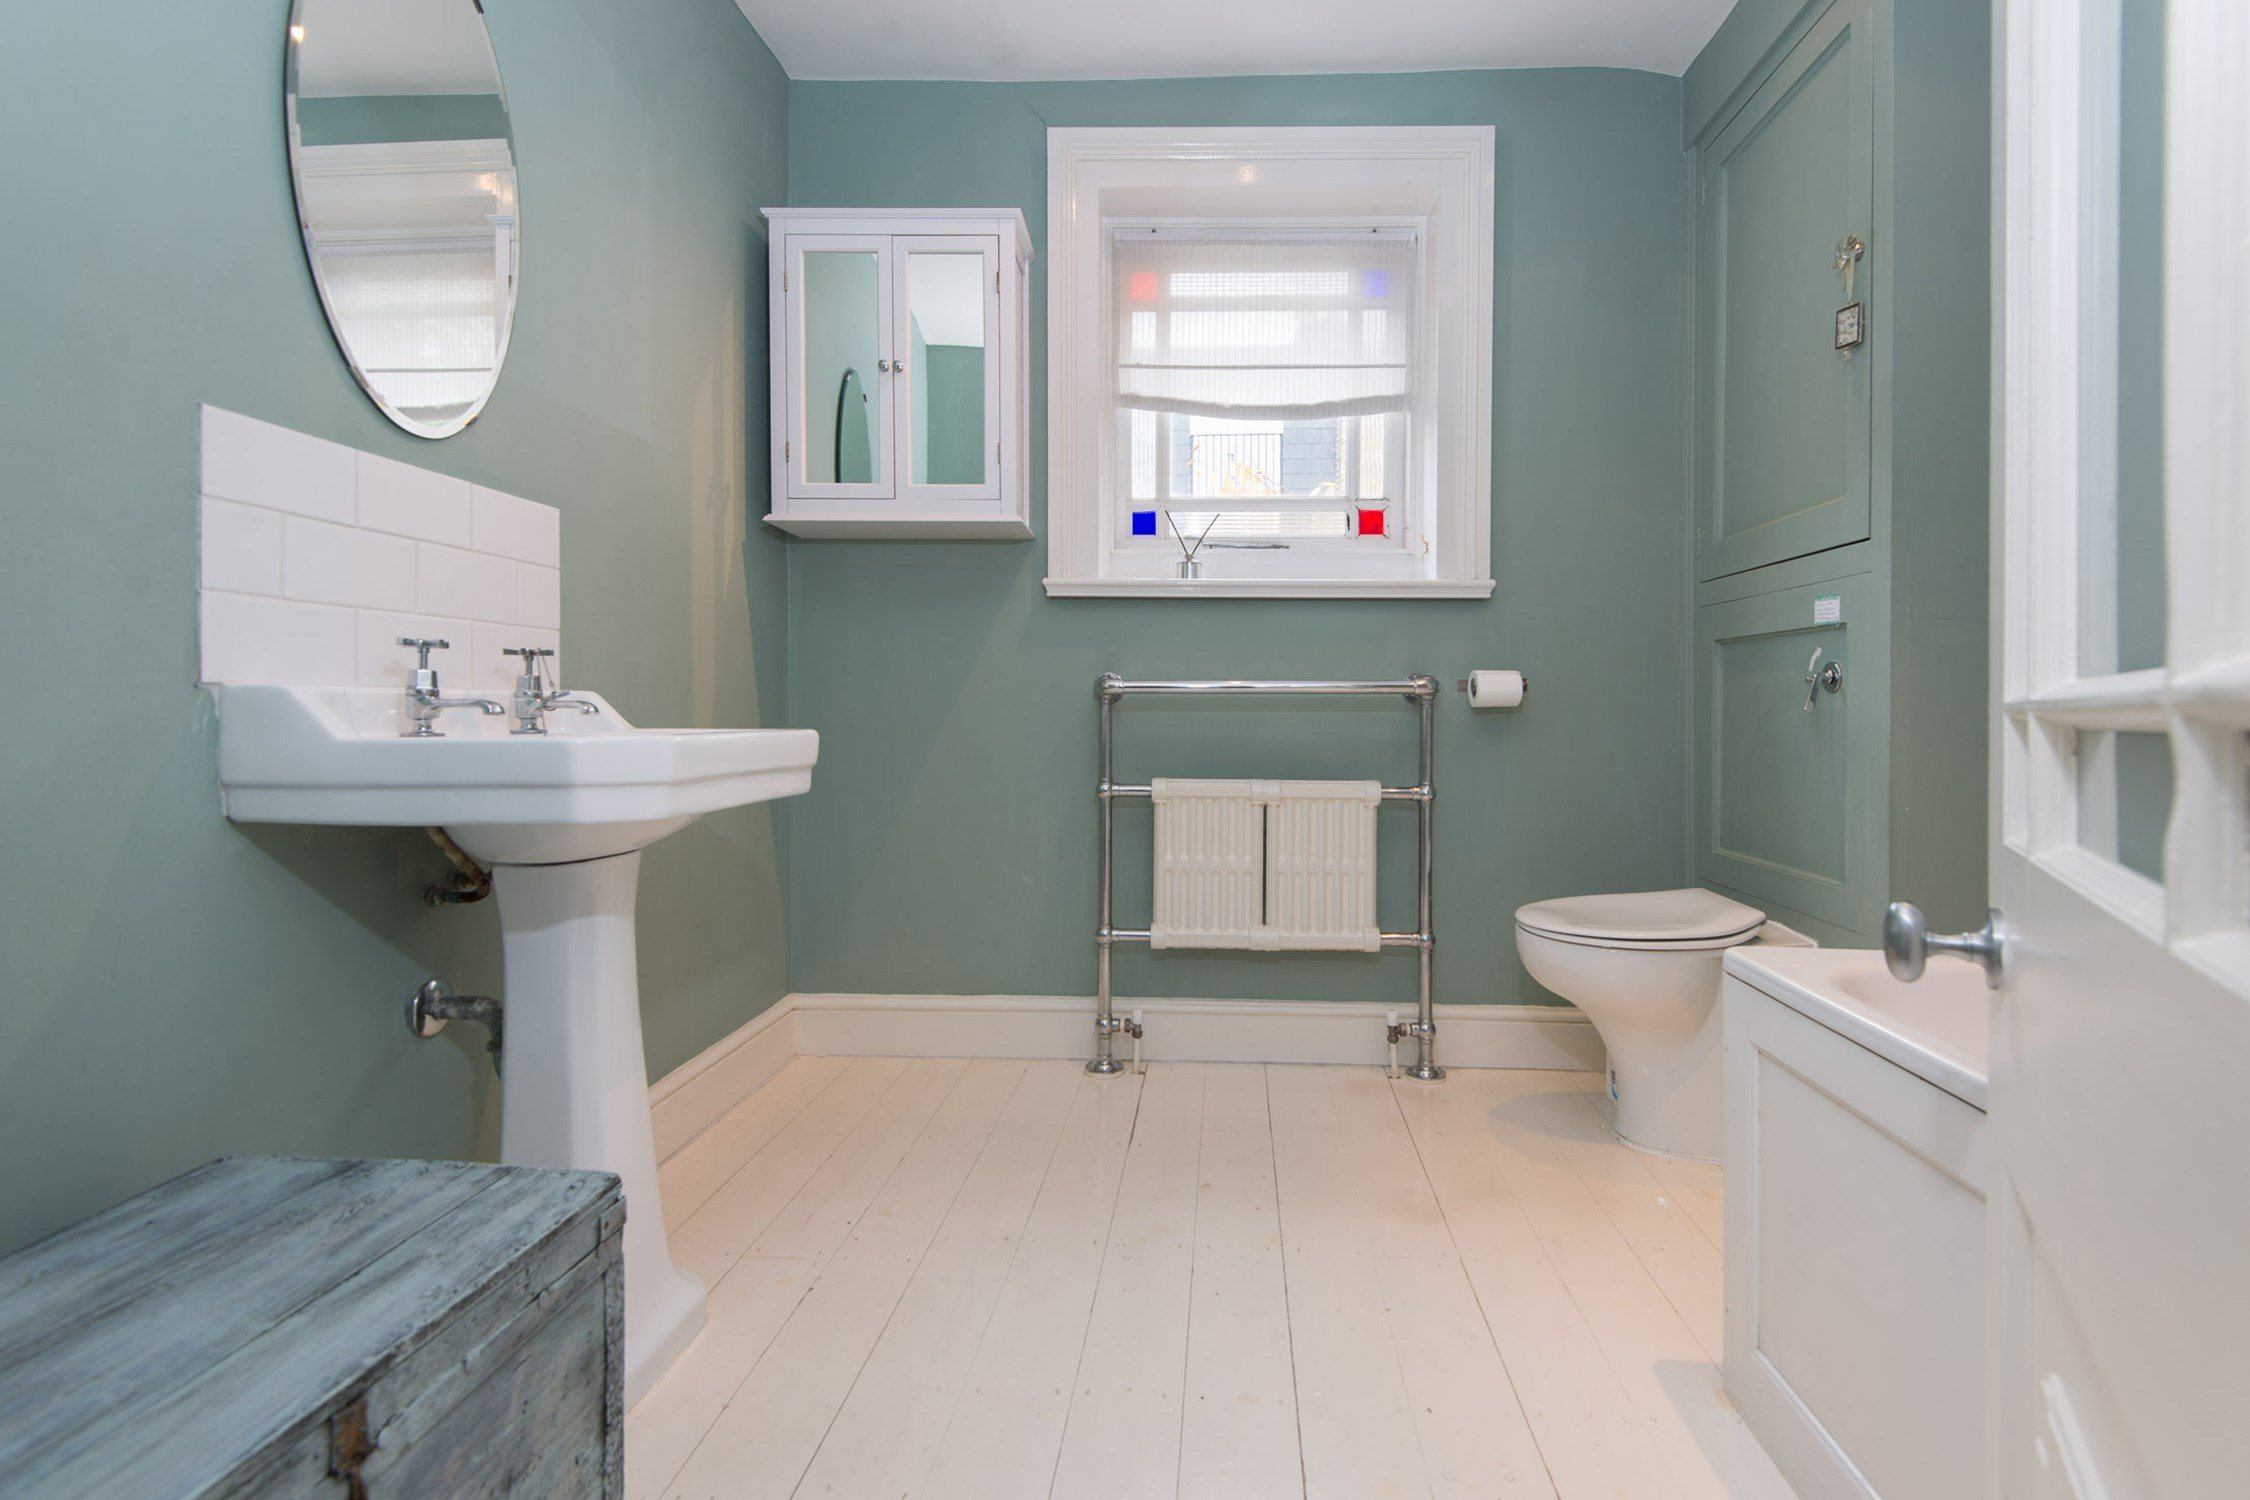 Portico 3 bedroom house recently let in chiswick for W 4 bathrooms chiswick